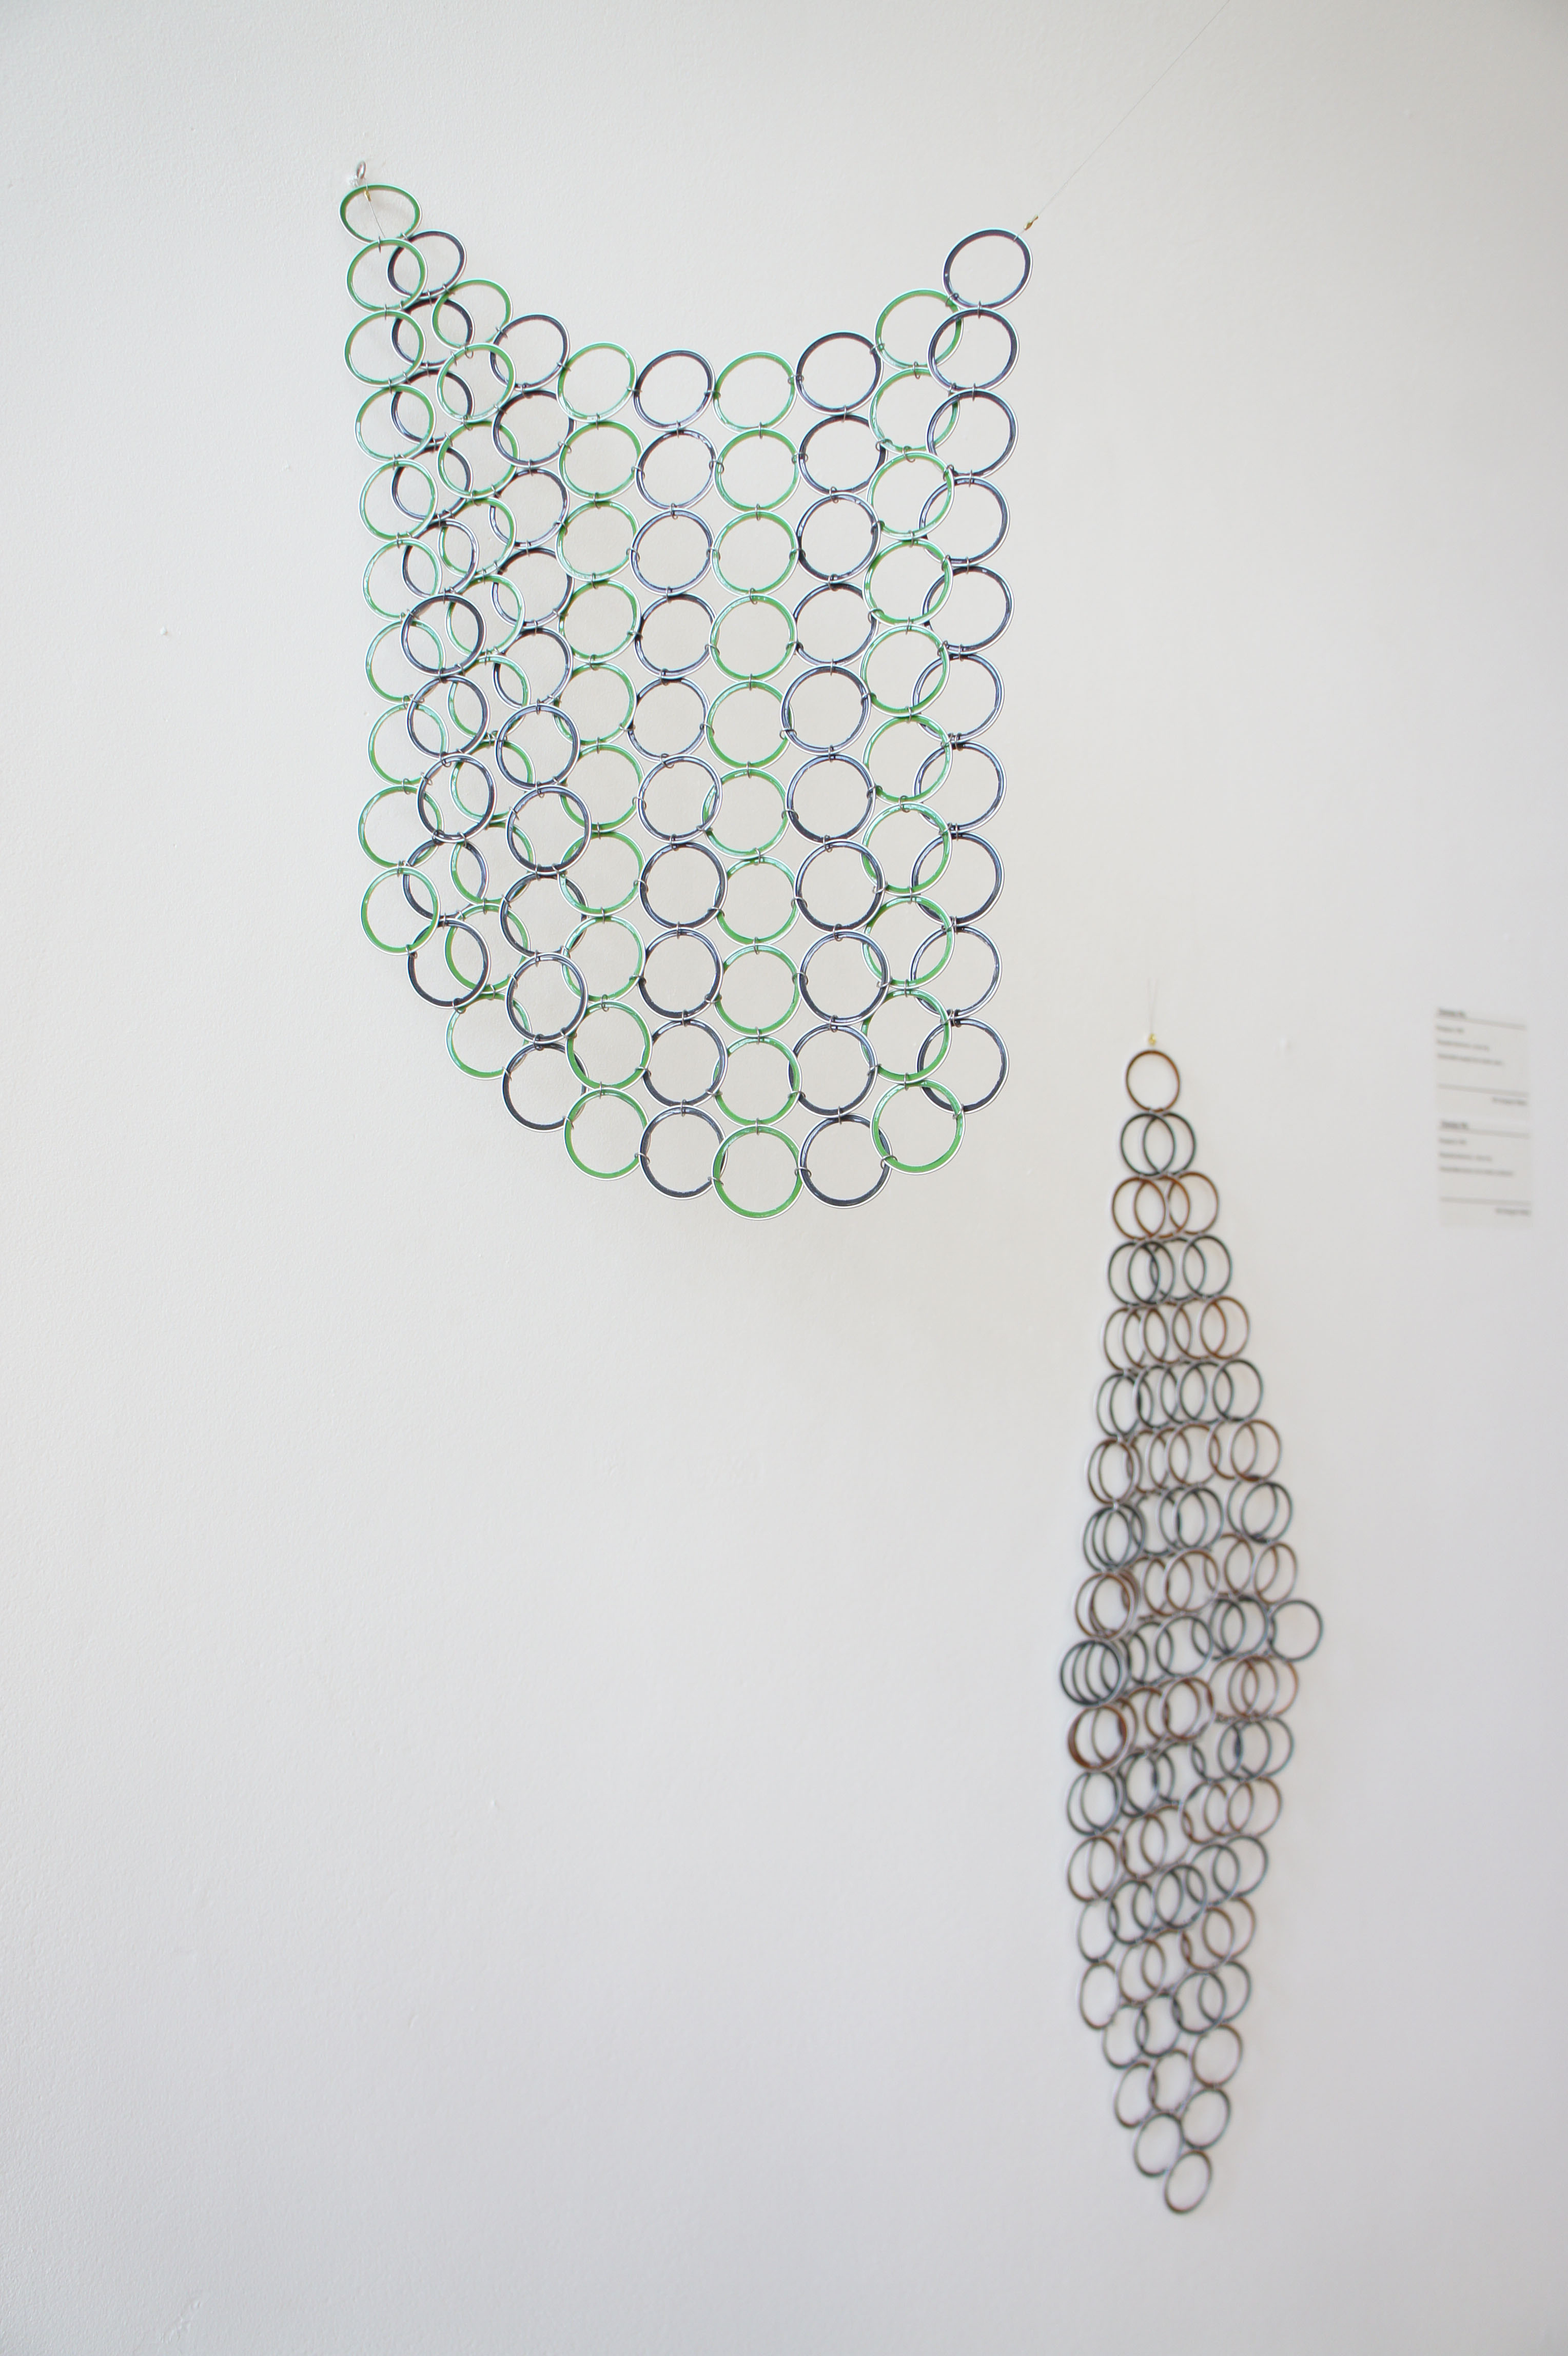 'Recapture 1068', Recycled aluminum, jump ring, Handcrafted woven room divider